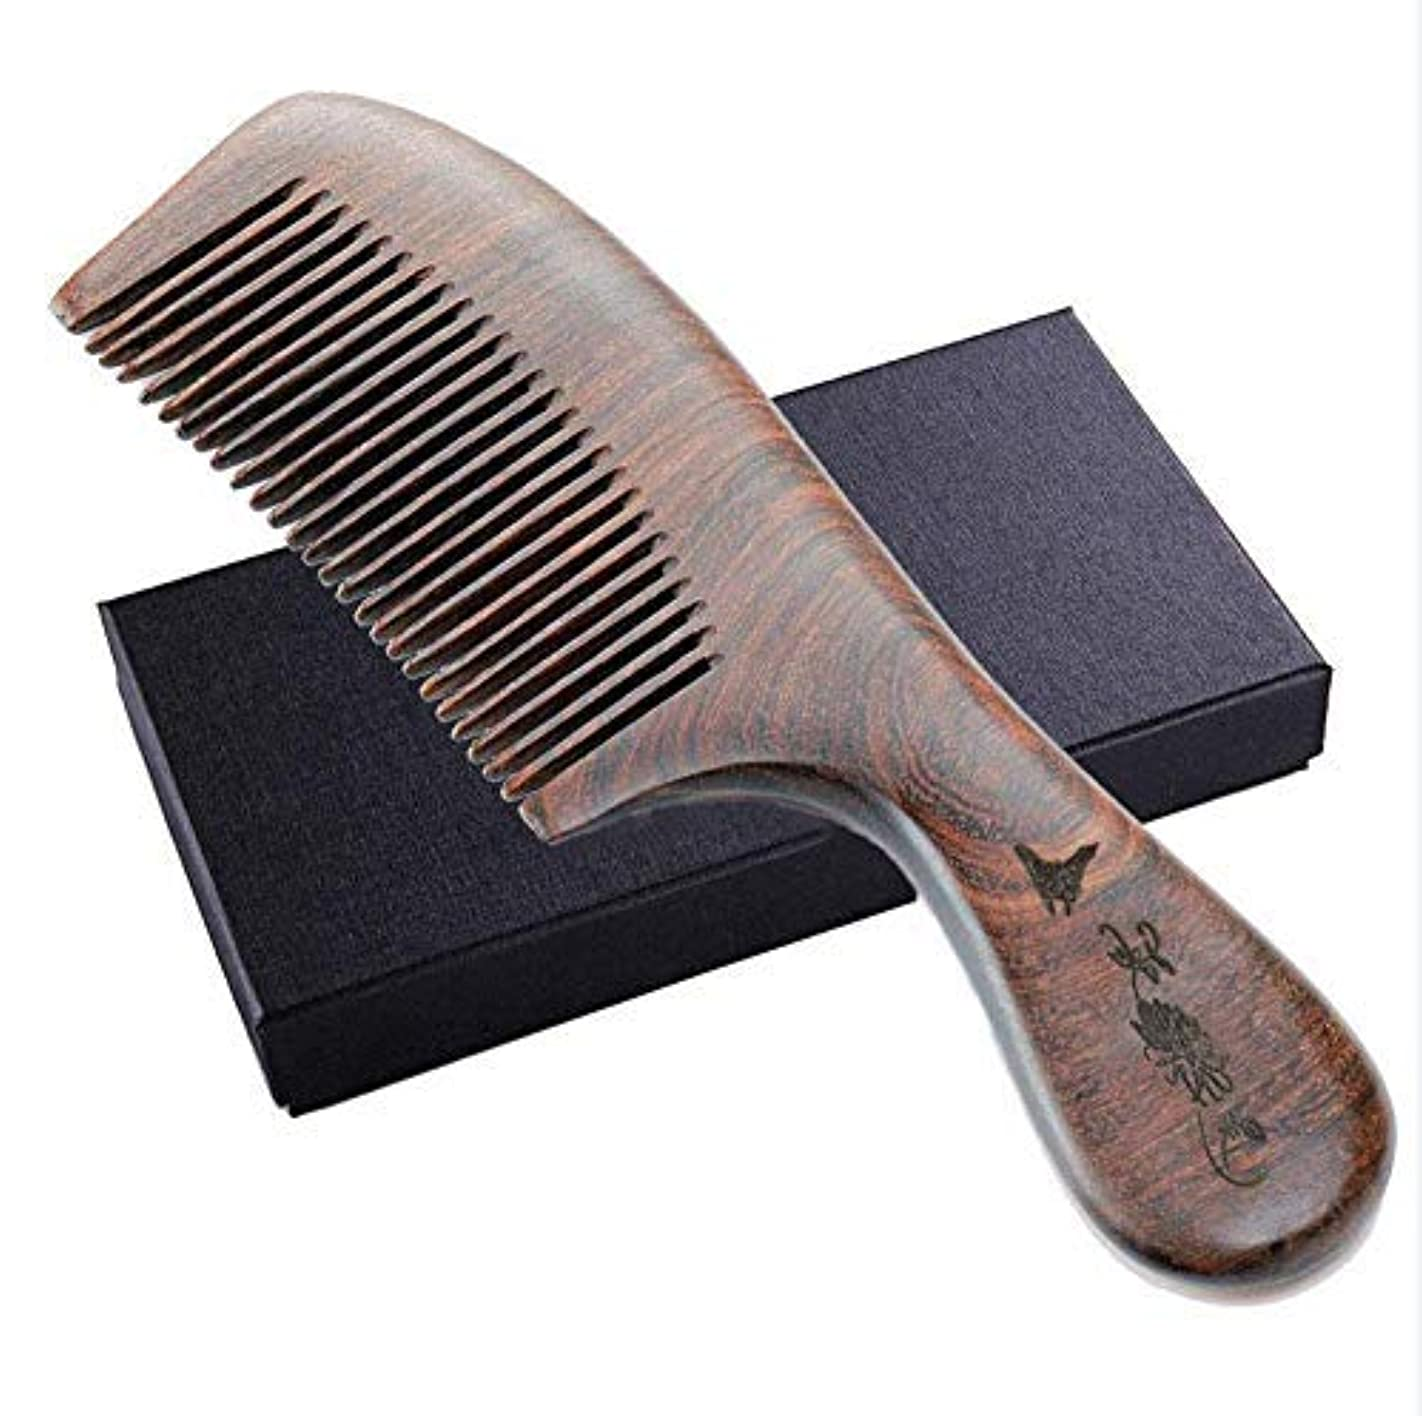 印象的な操作可能集めるWooden Hair Comb, Anti-Static, Detangling Fine Tooth Shower Comb,No Static Natural Wooden Sandalwood Comb for Women, Men [並行輸入品]